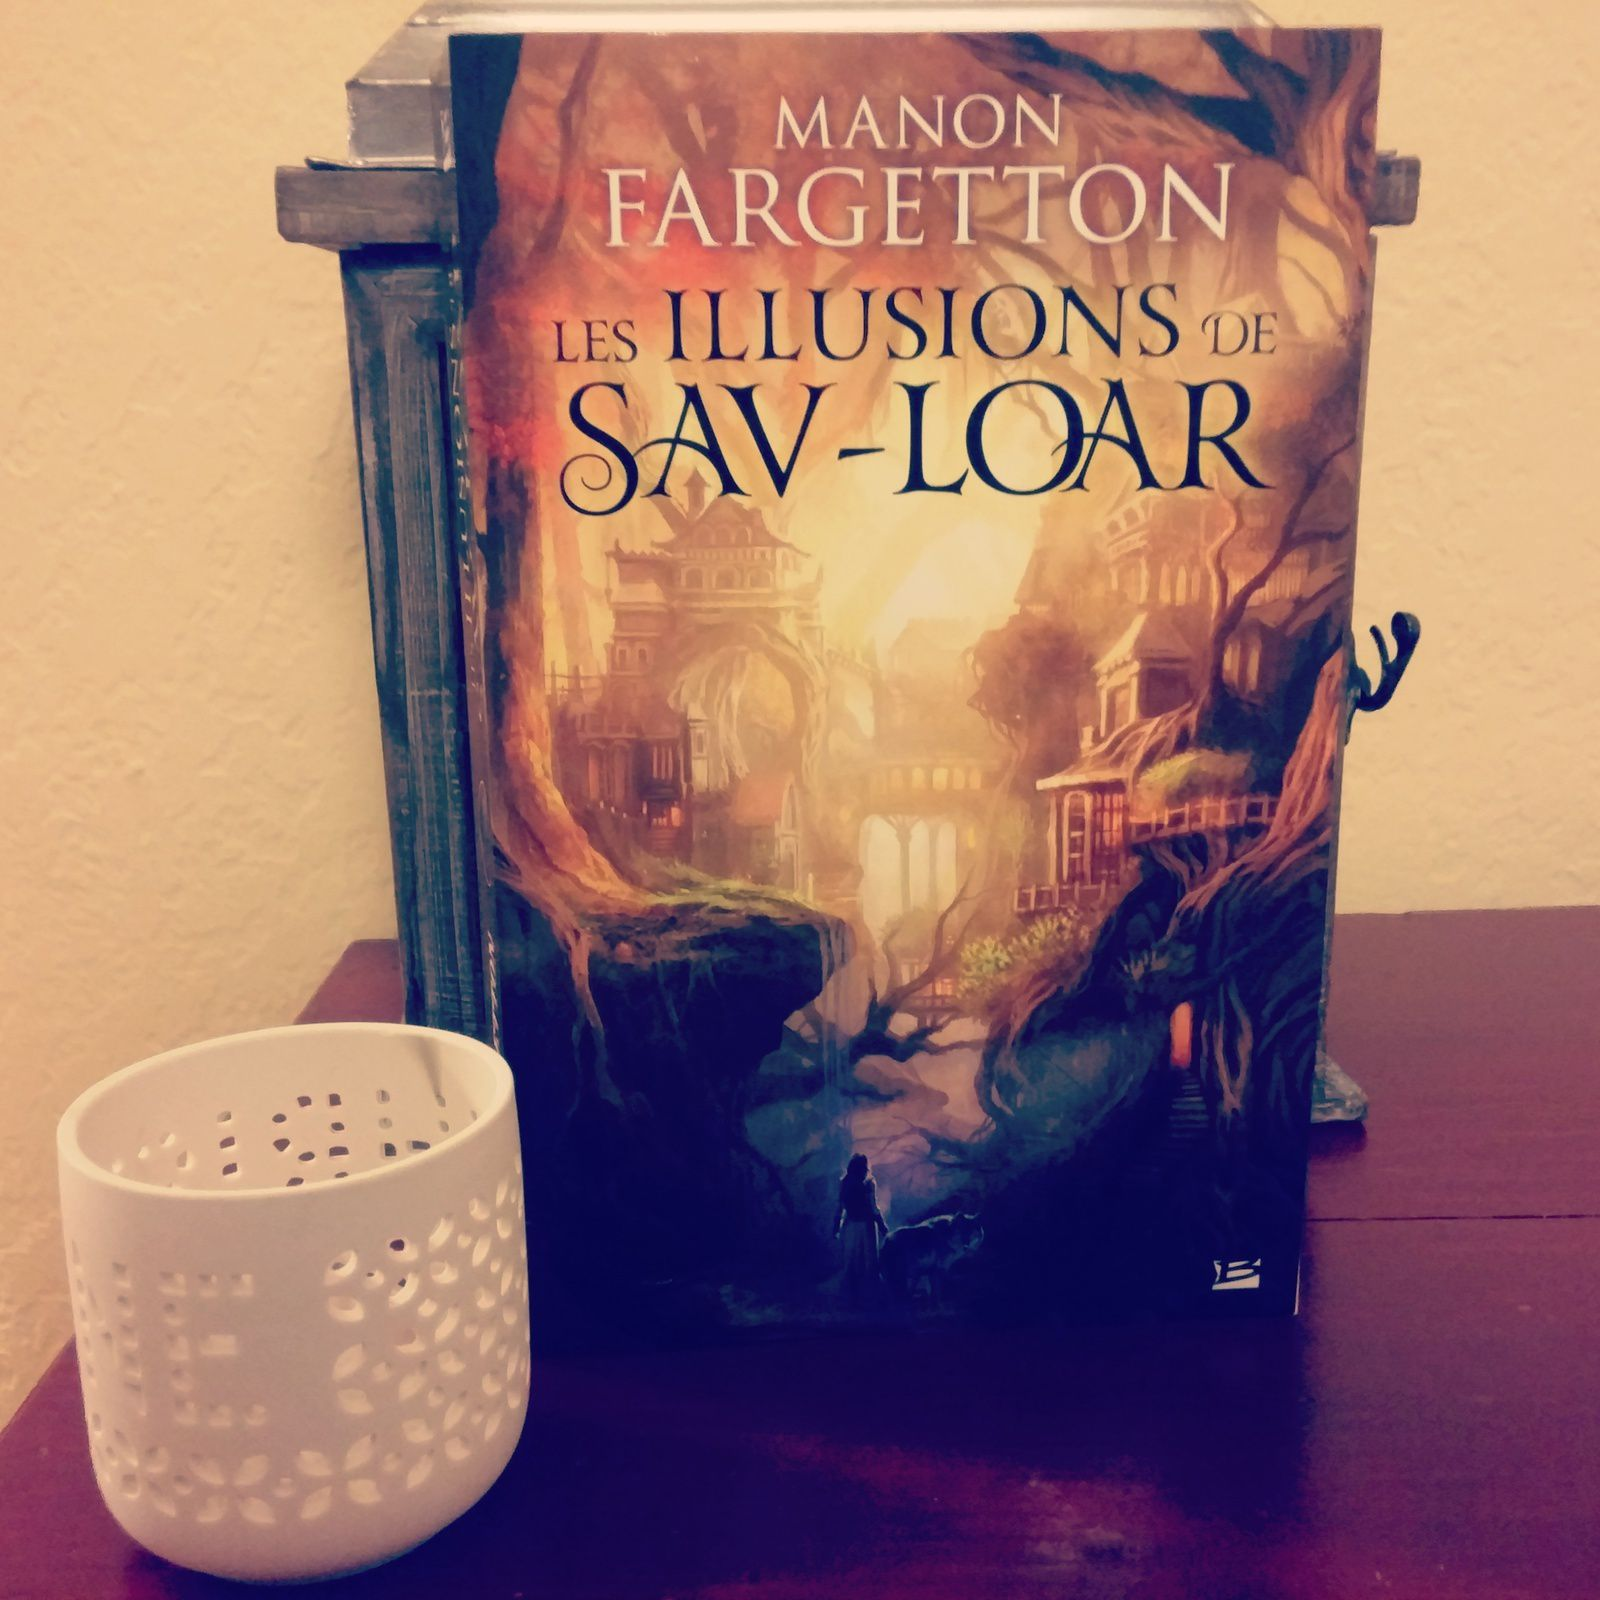 [Chronique fantasy] Les illusions de Sav-Loar, de Manon Fargetton